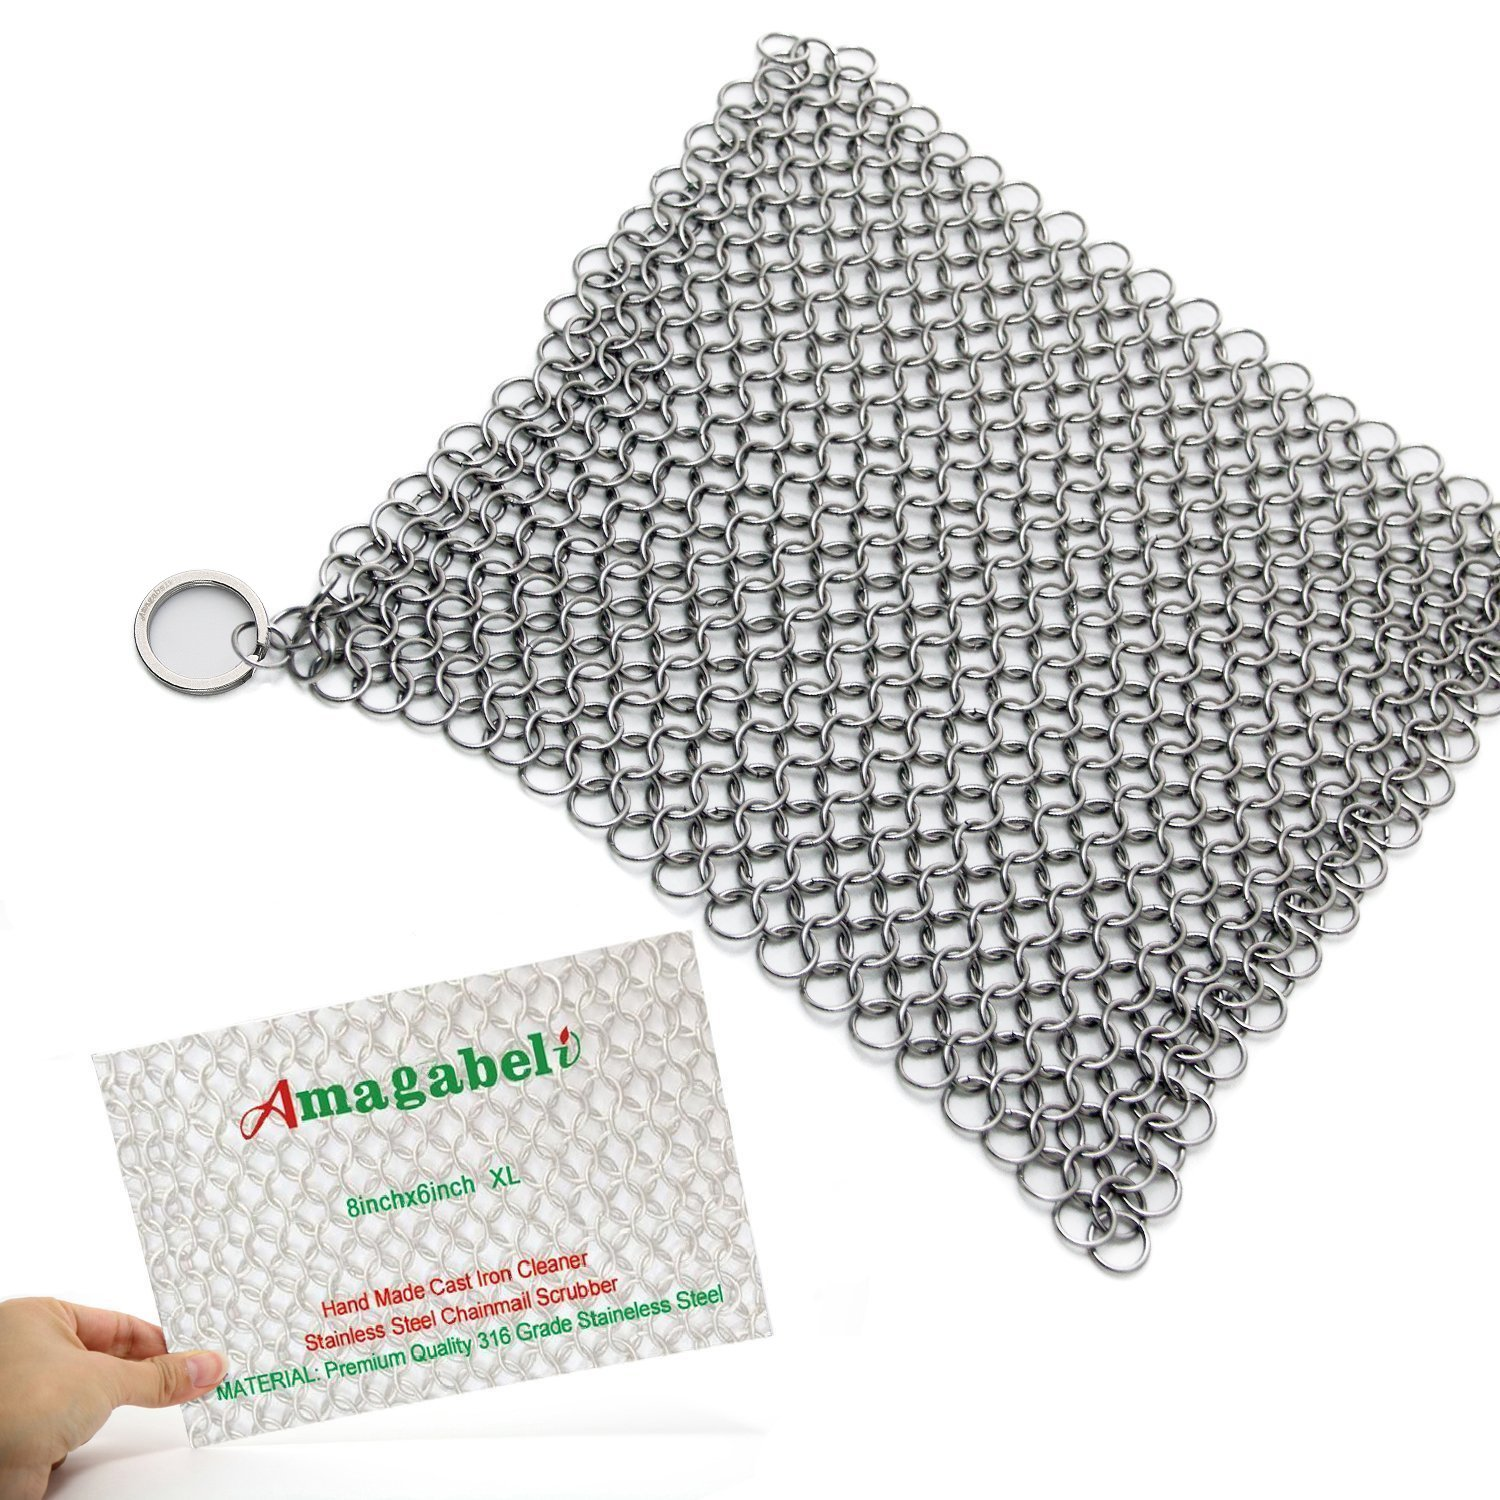 AMAGABELI GARDEN & HOME 8''x6'' Stainless Steel Cast Iron Cleaner 316L Chainmail Scrubber for Cast Iron Pan Pre-Seasoned Pan Dutch Ovens Waffle Iron Pans Scraper Cast Iron Grill Skillet Scraper